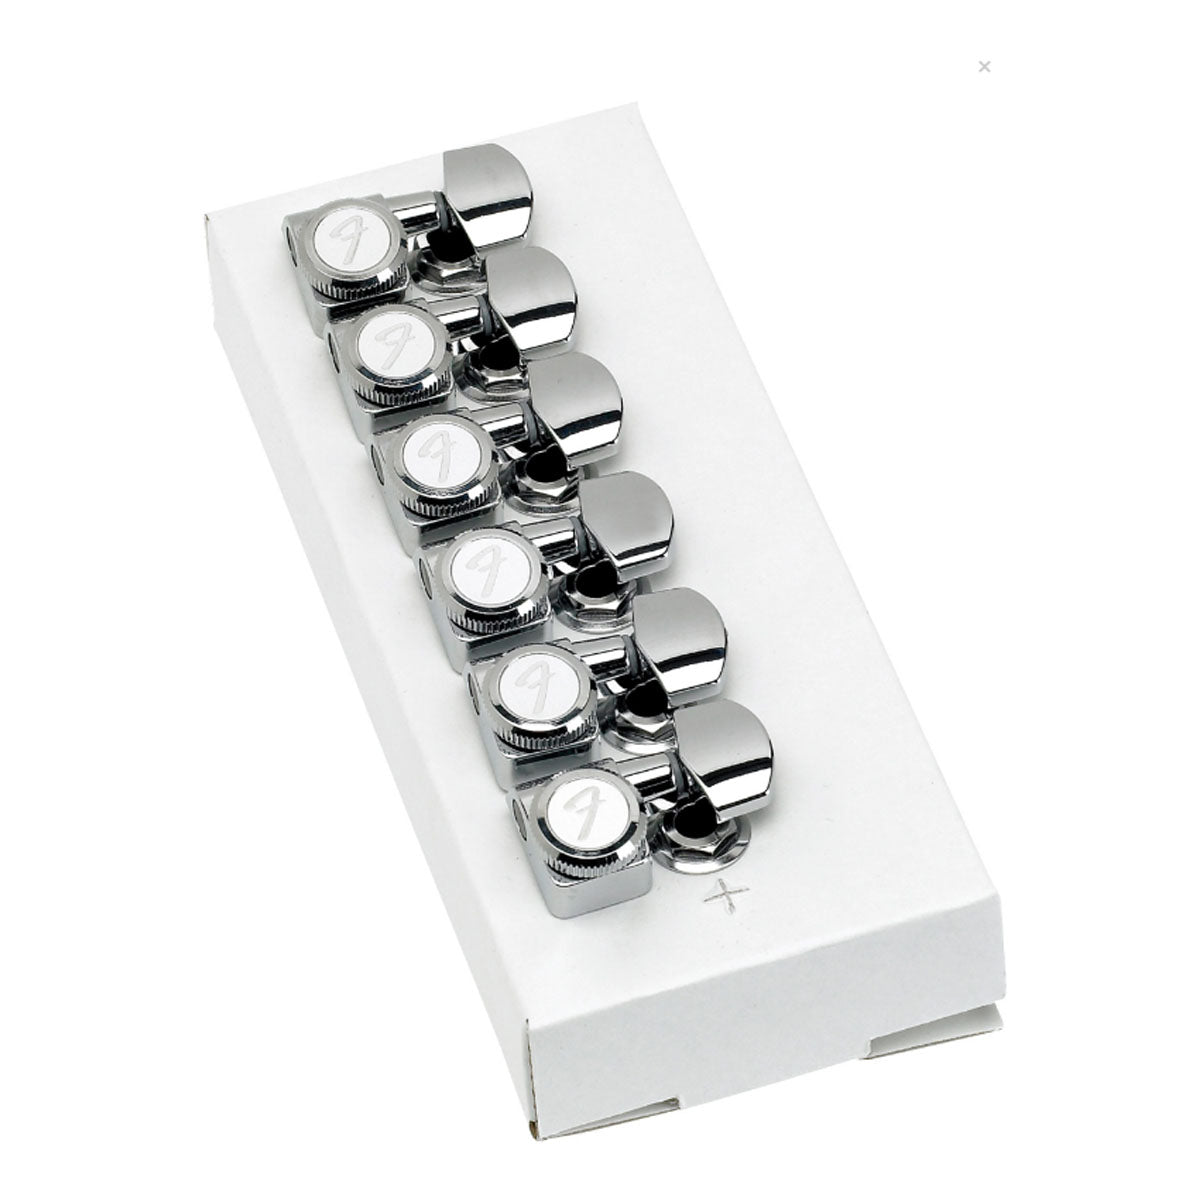 Fender Locking Tuners Polished Chrome - Stratocaster/Telecaster Tuning Machines (6 Pack) - 0990818100